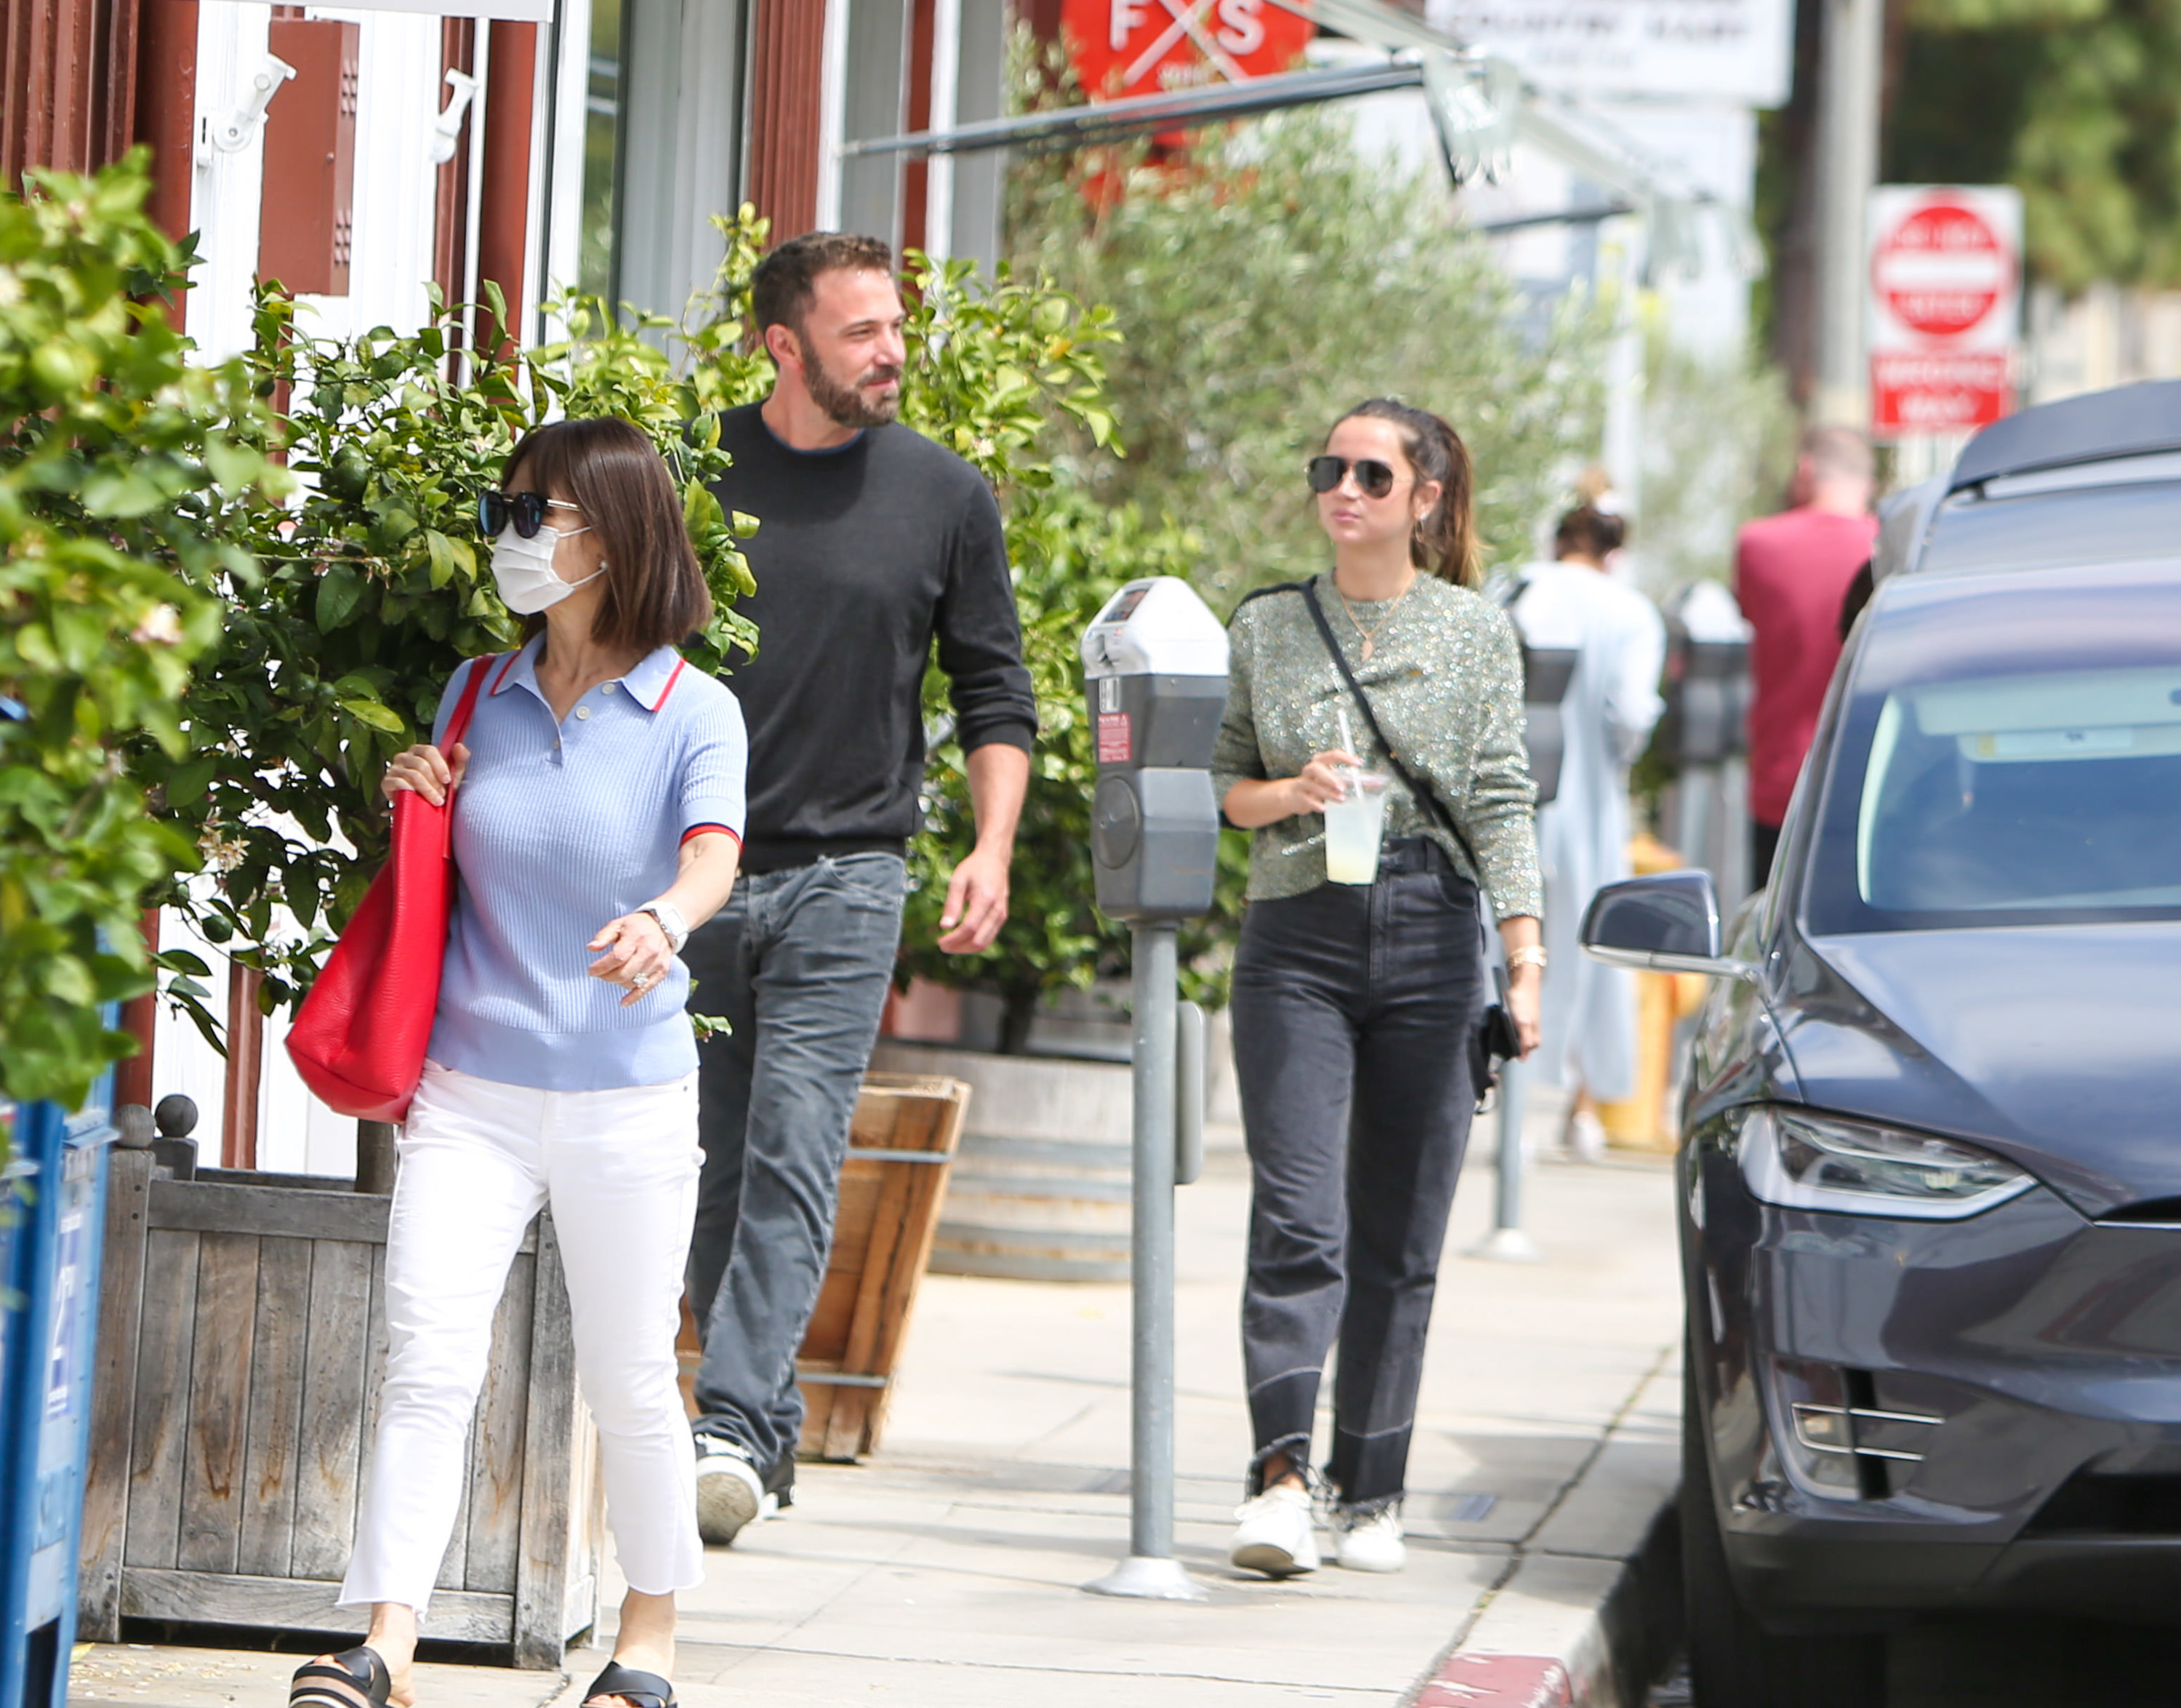 Ana de Armas and Ben Affleck are seen walking and sipping on iced beverages